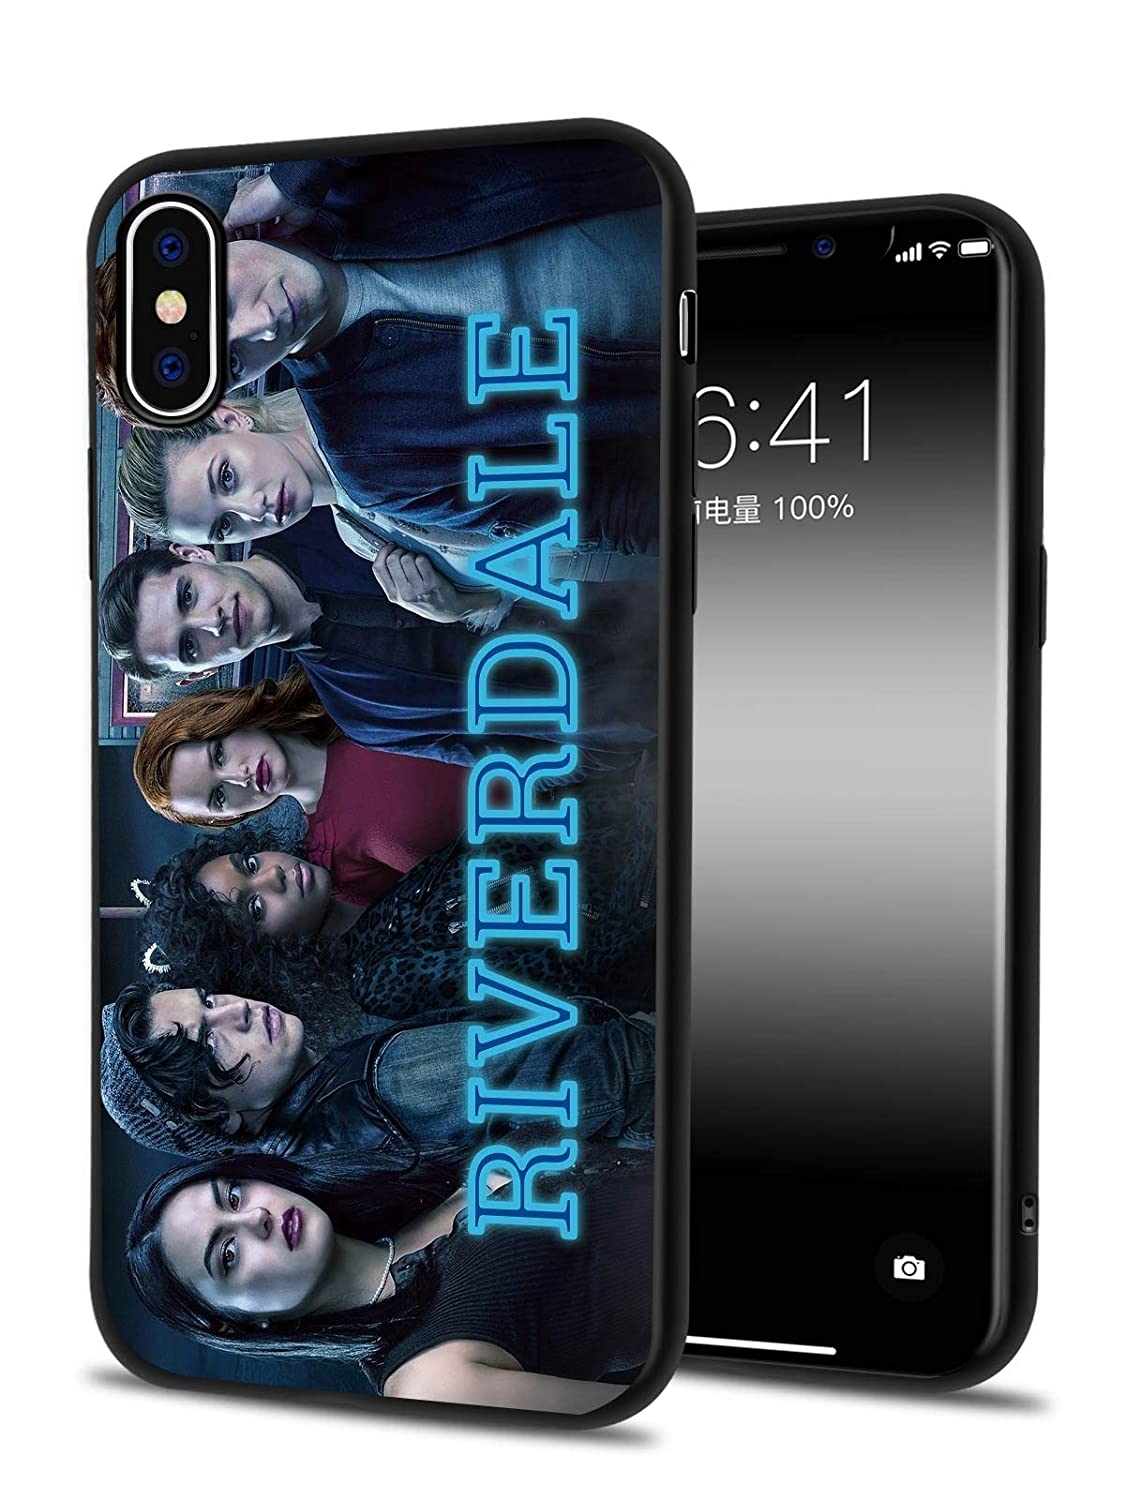 riverdale phone case iphone 6